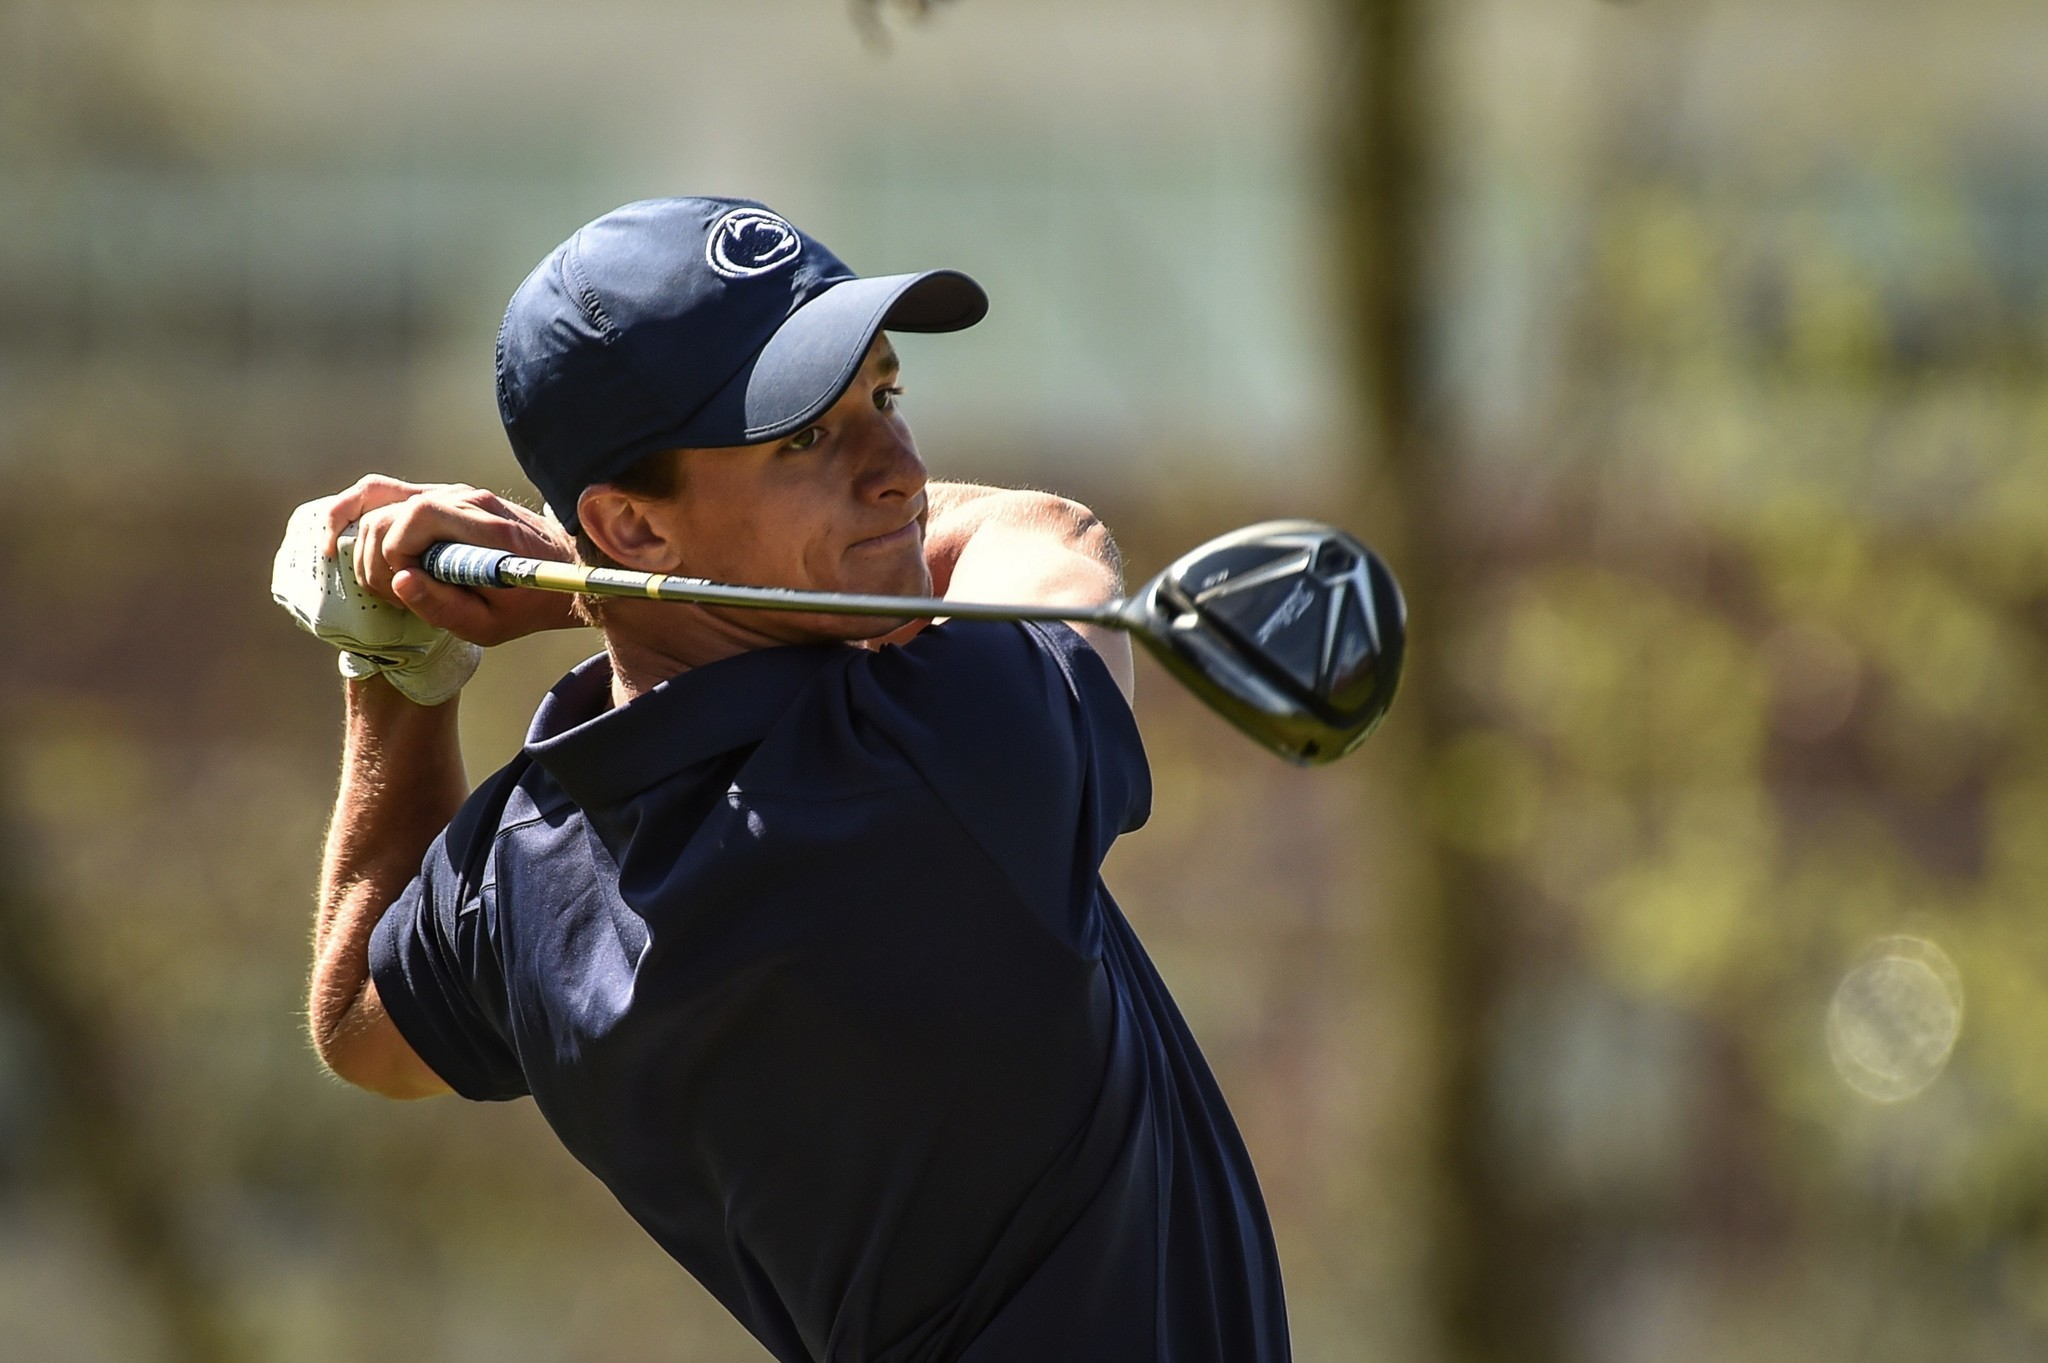 Mc-penn-state-s-cole-miller-in-contention-at-ncaa-golf-regional-20170516